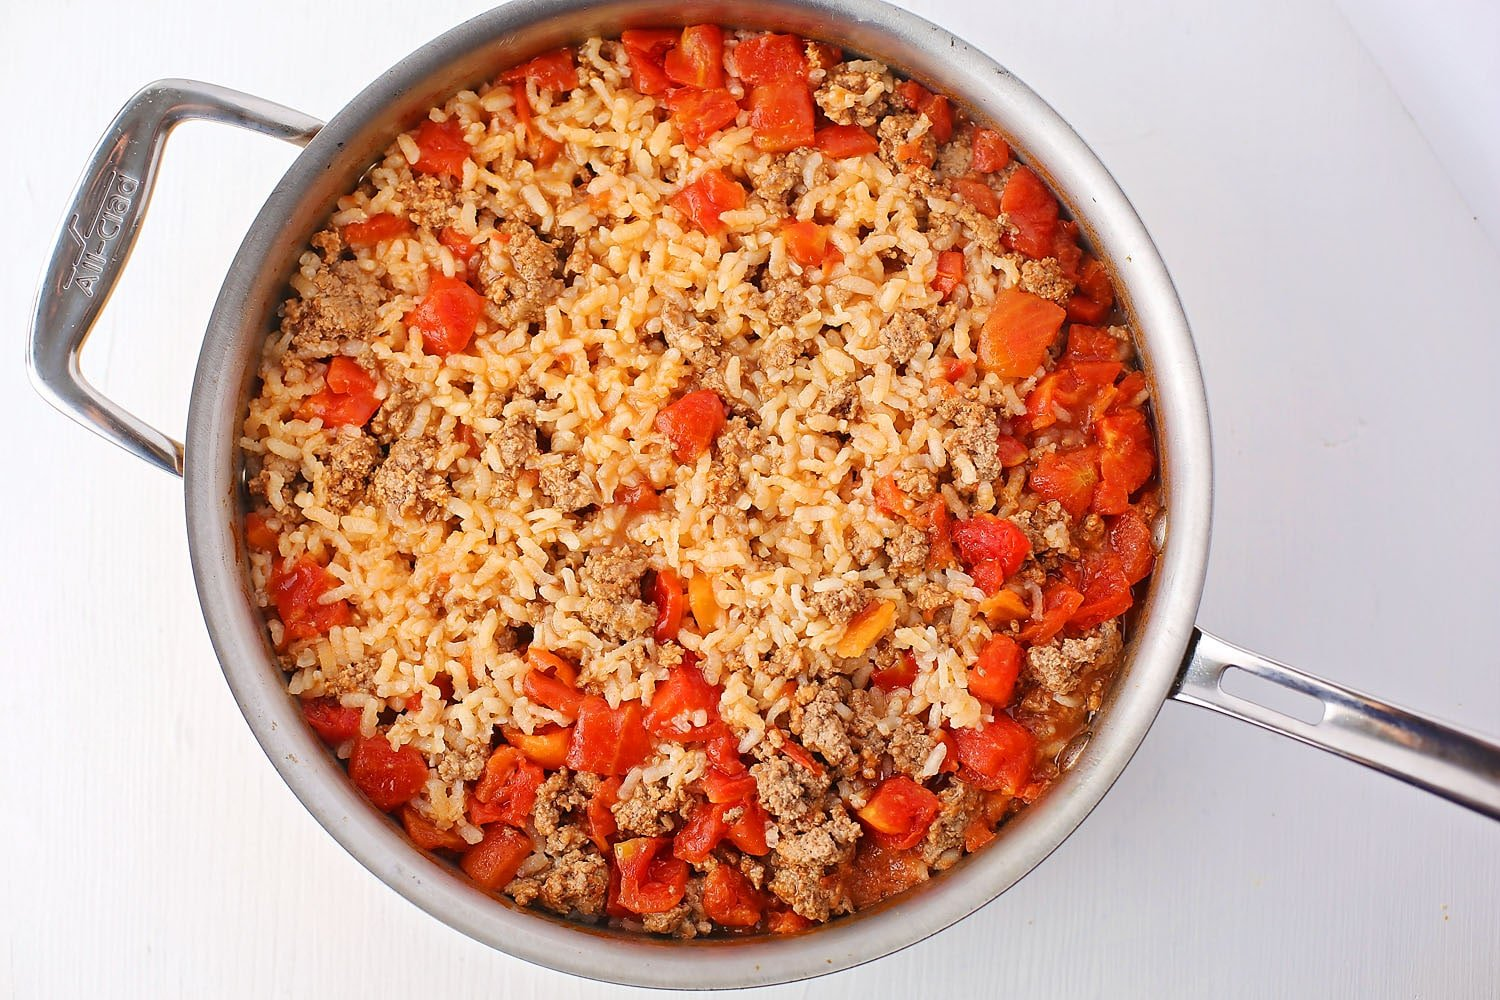 skillet with rice and tomato sauce